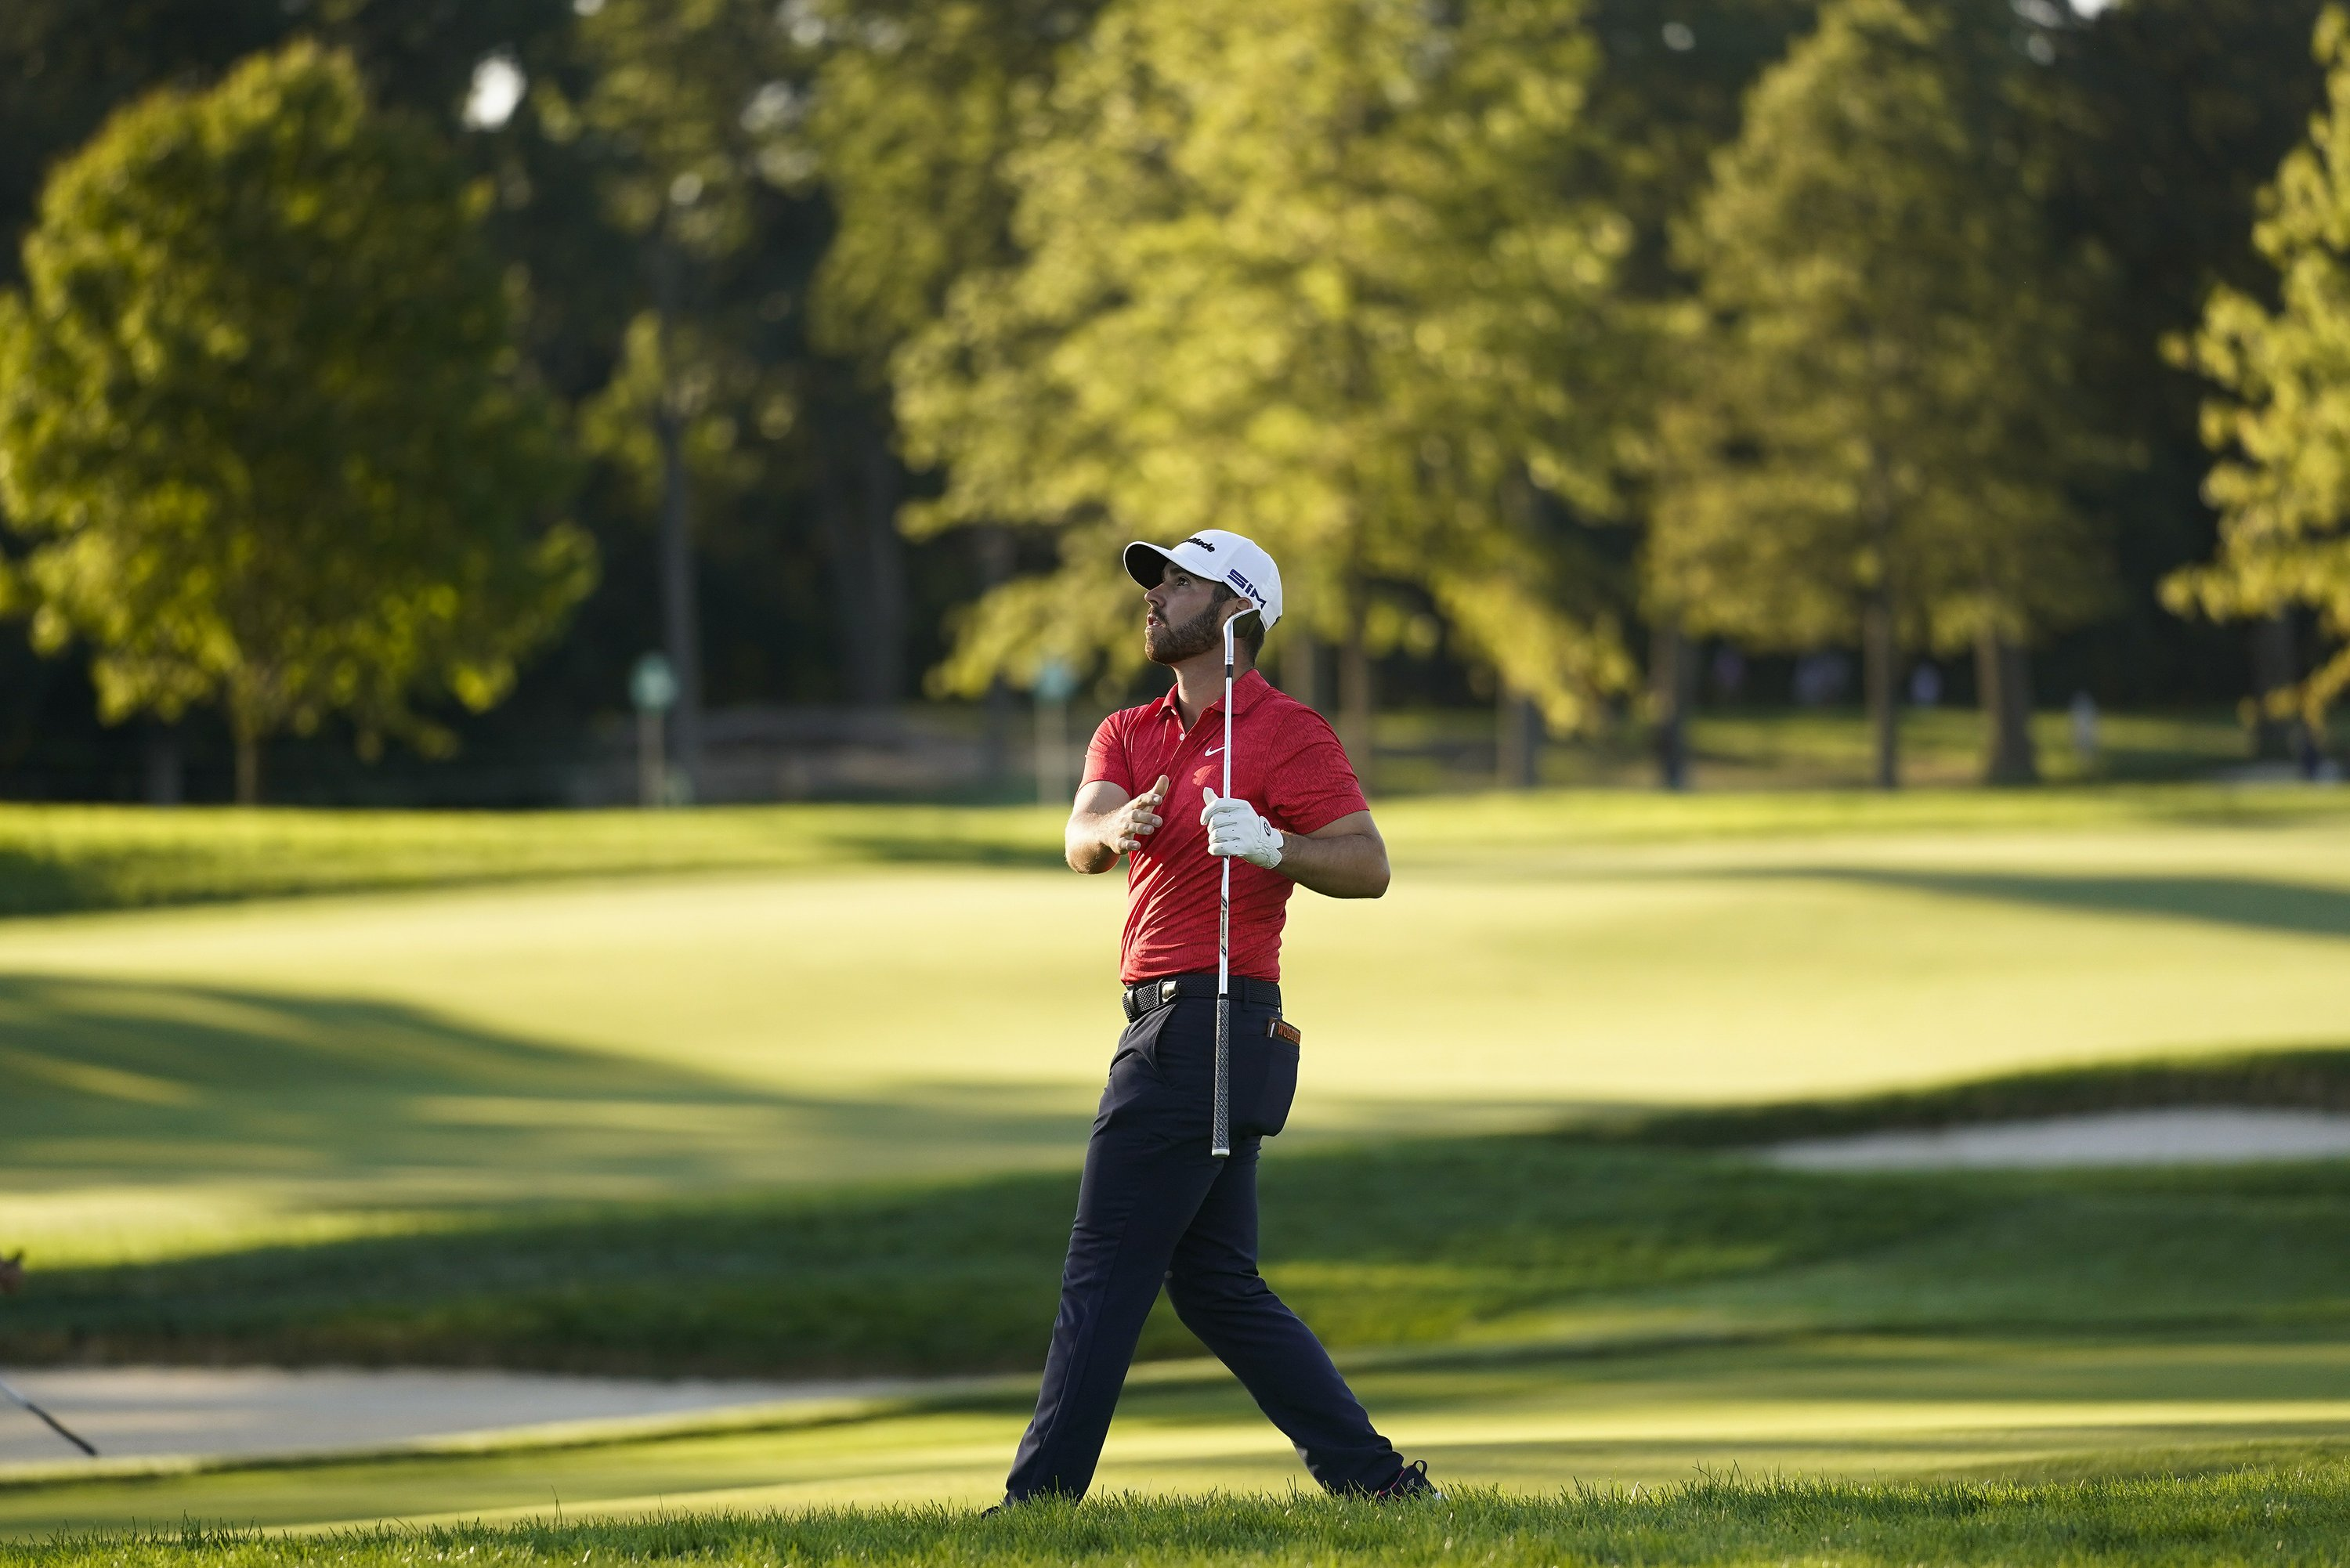 Column: No fans could be advantage for Wolff in US Open